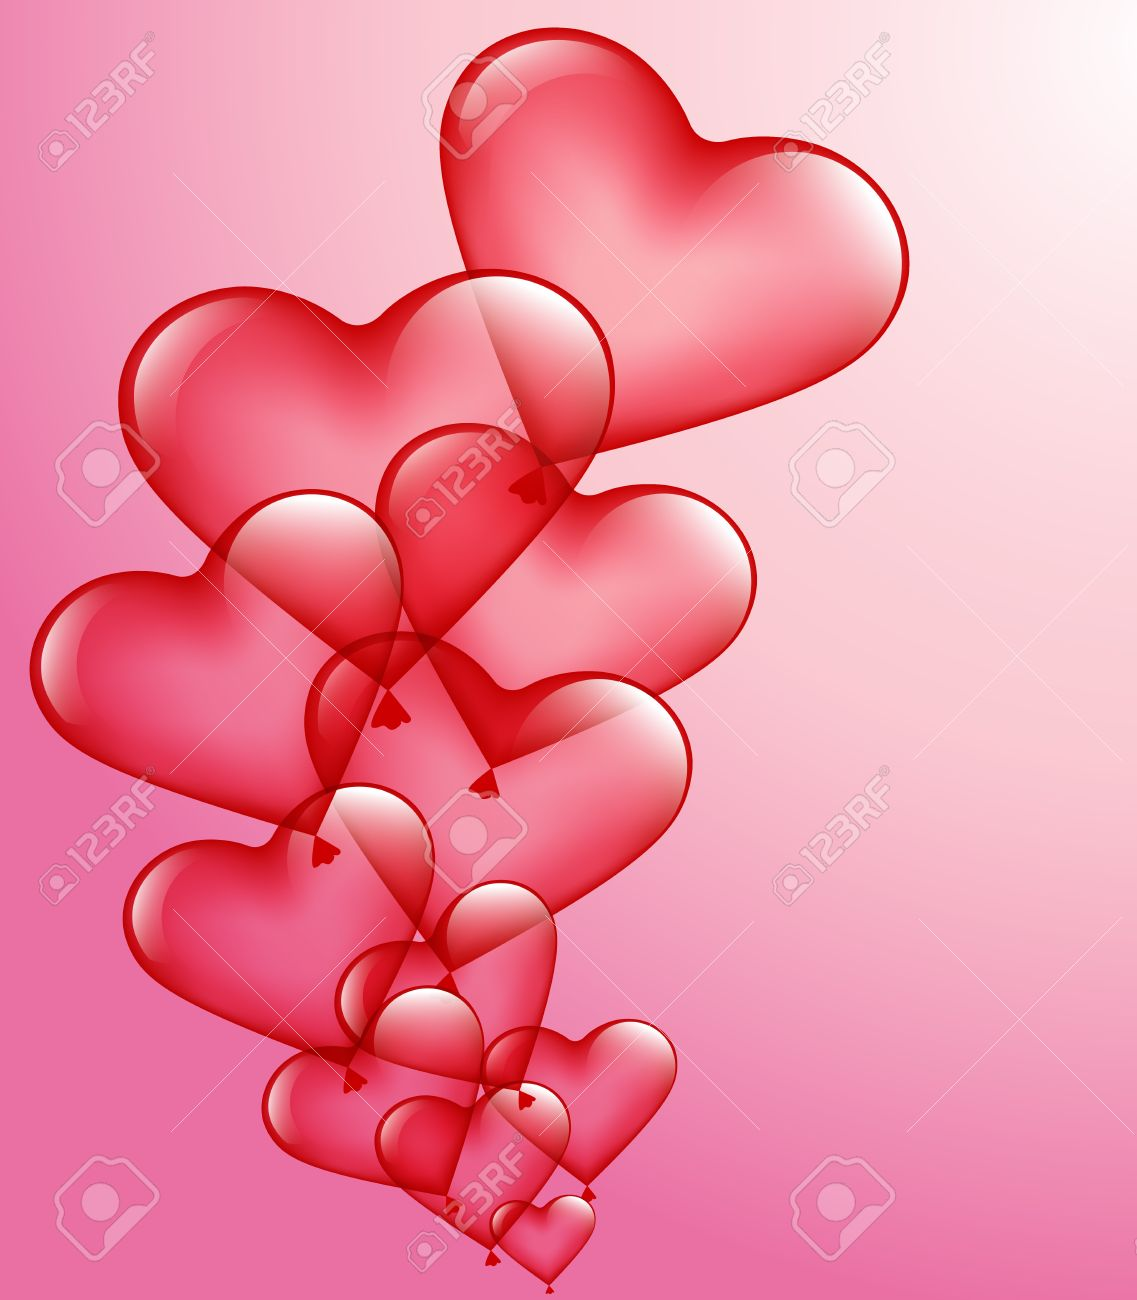 red heart-balloons on a pink background Stock Vector - 17272353